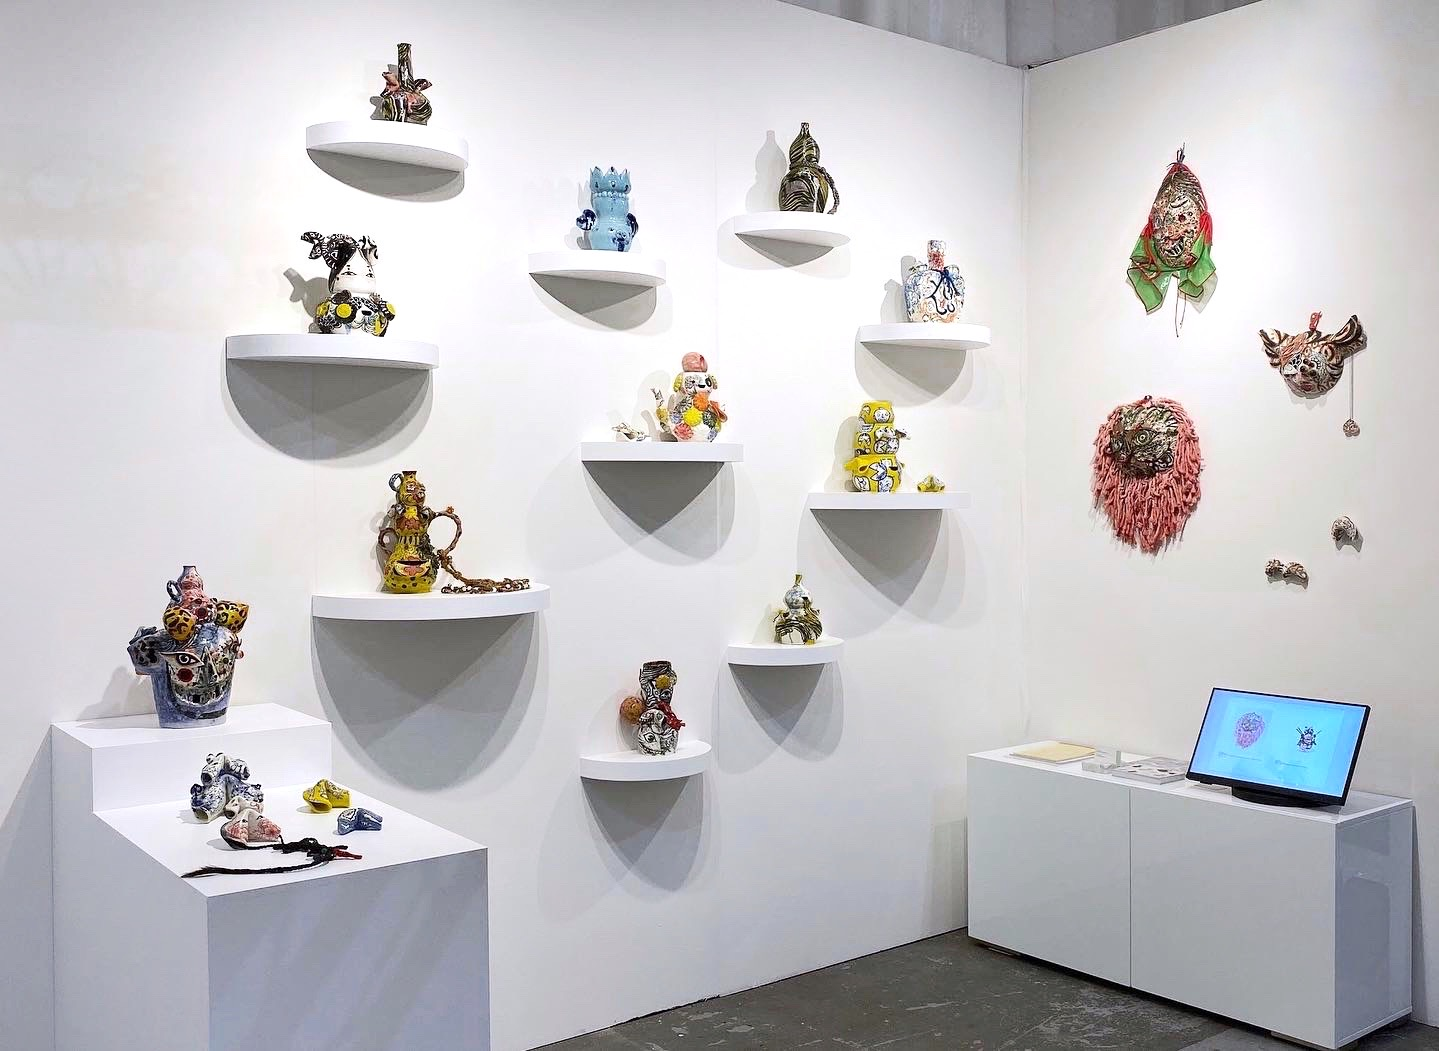 Laney Contemporary Booth P13 at NADA 2019